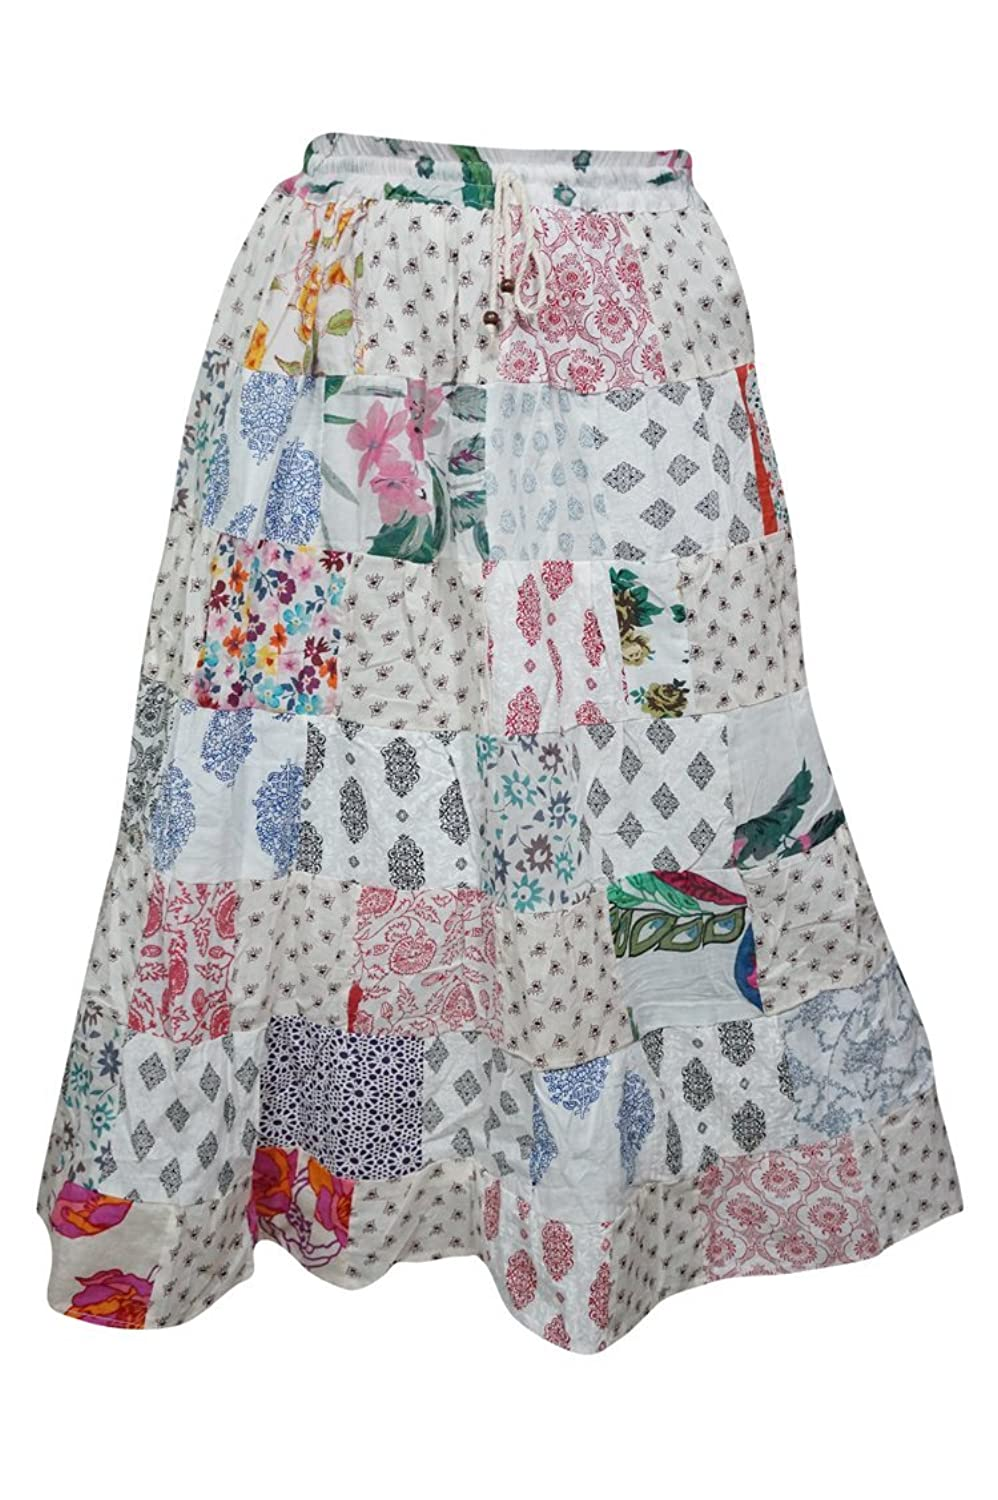 Mogul Interior Women's Long Skirt Patchwork Stylish Floral Printed Rayon Bohemian Gypsy M